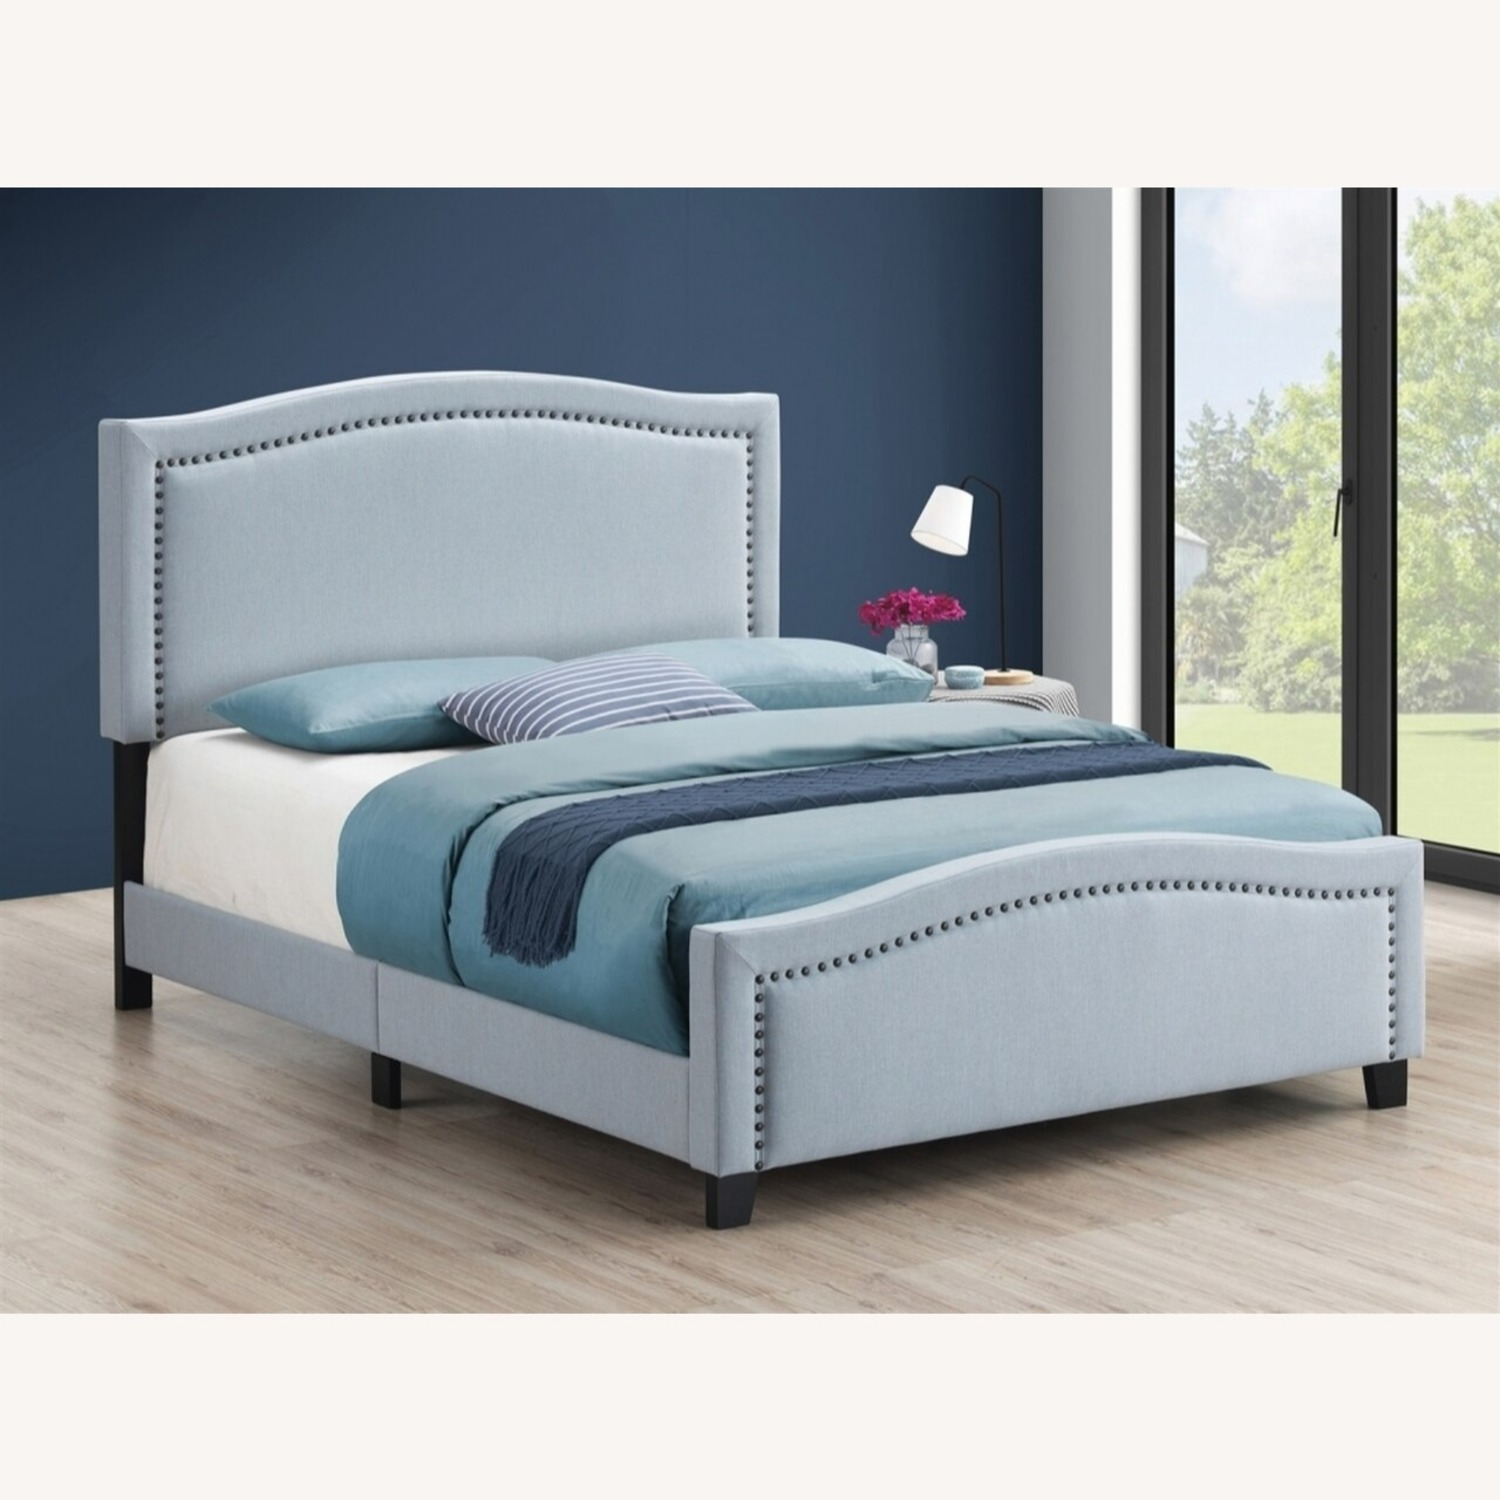 Modern Classic Queen Bed In Delft Blue Fabric - image-2